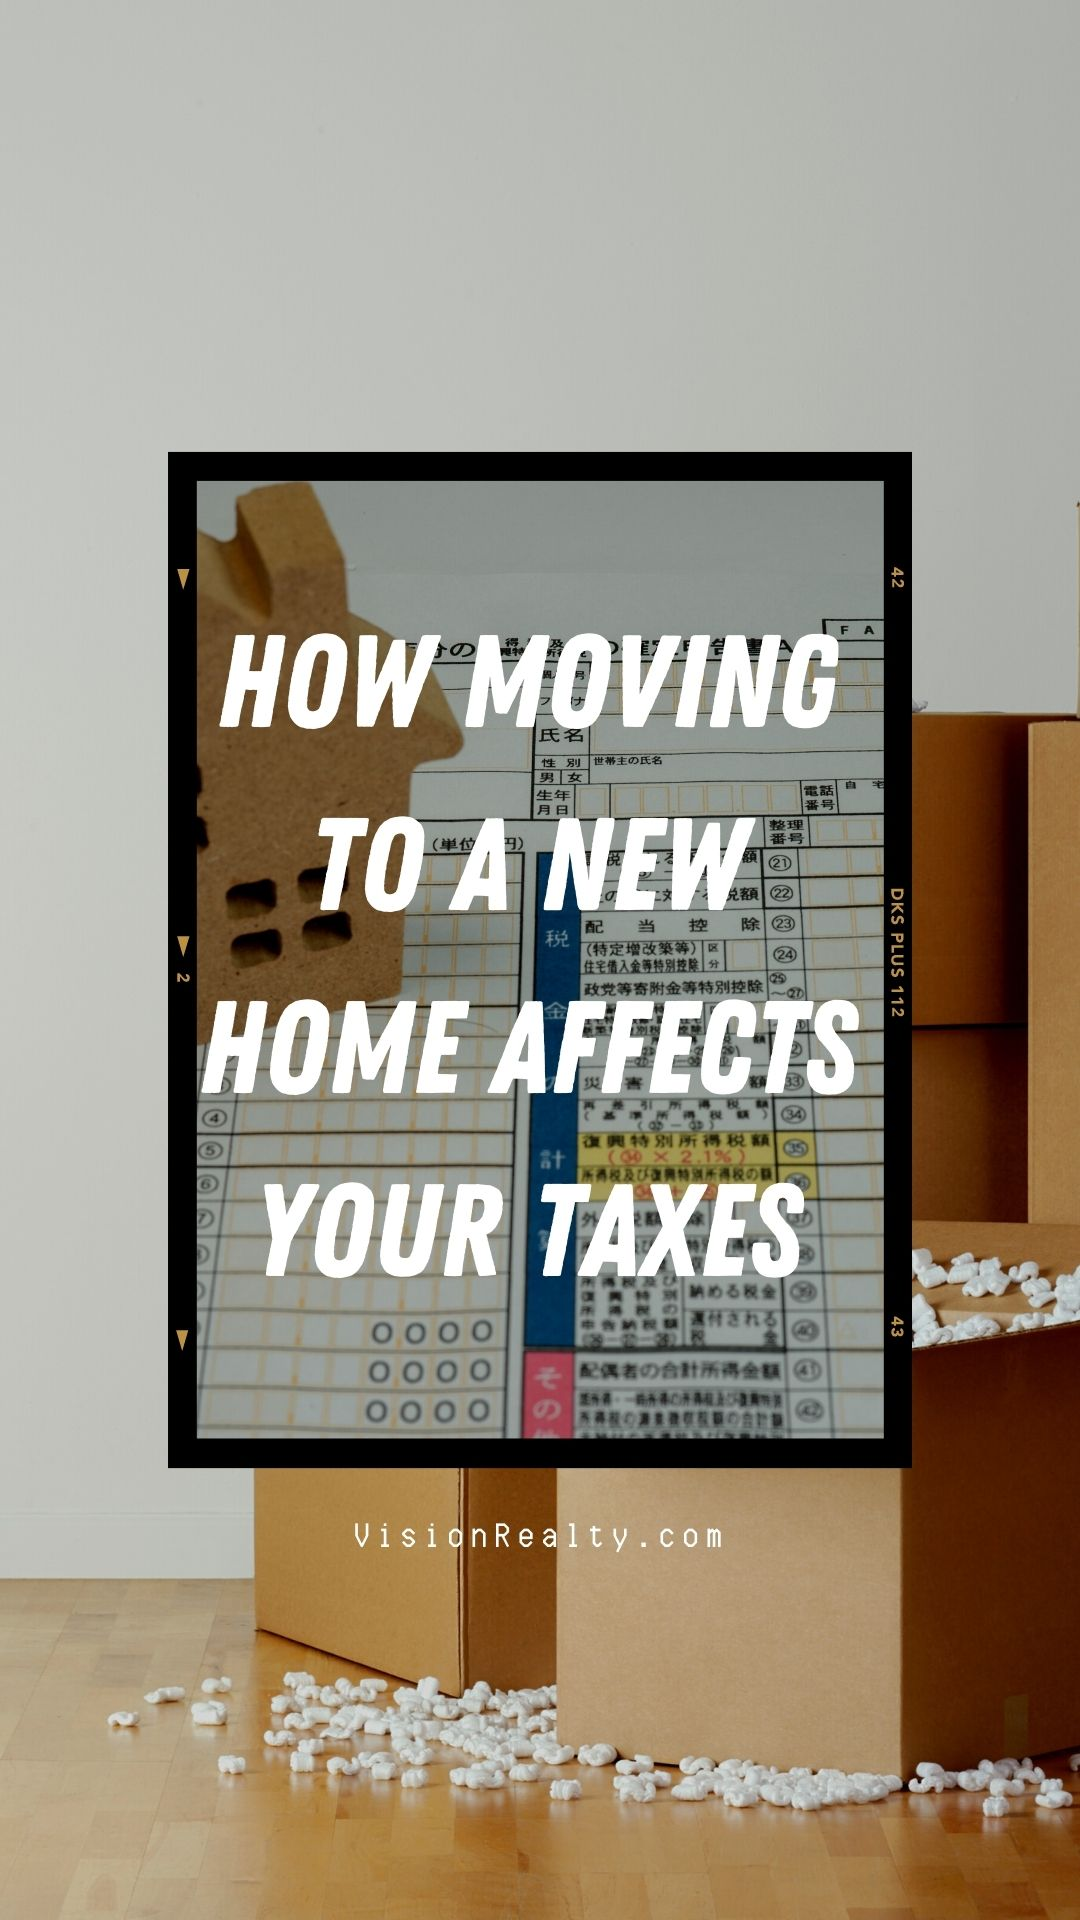 How Moving to a New Home Affects Your Taxes